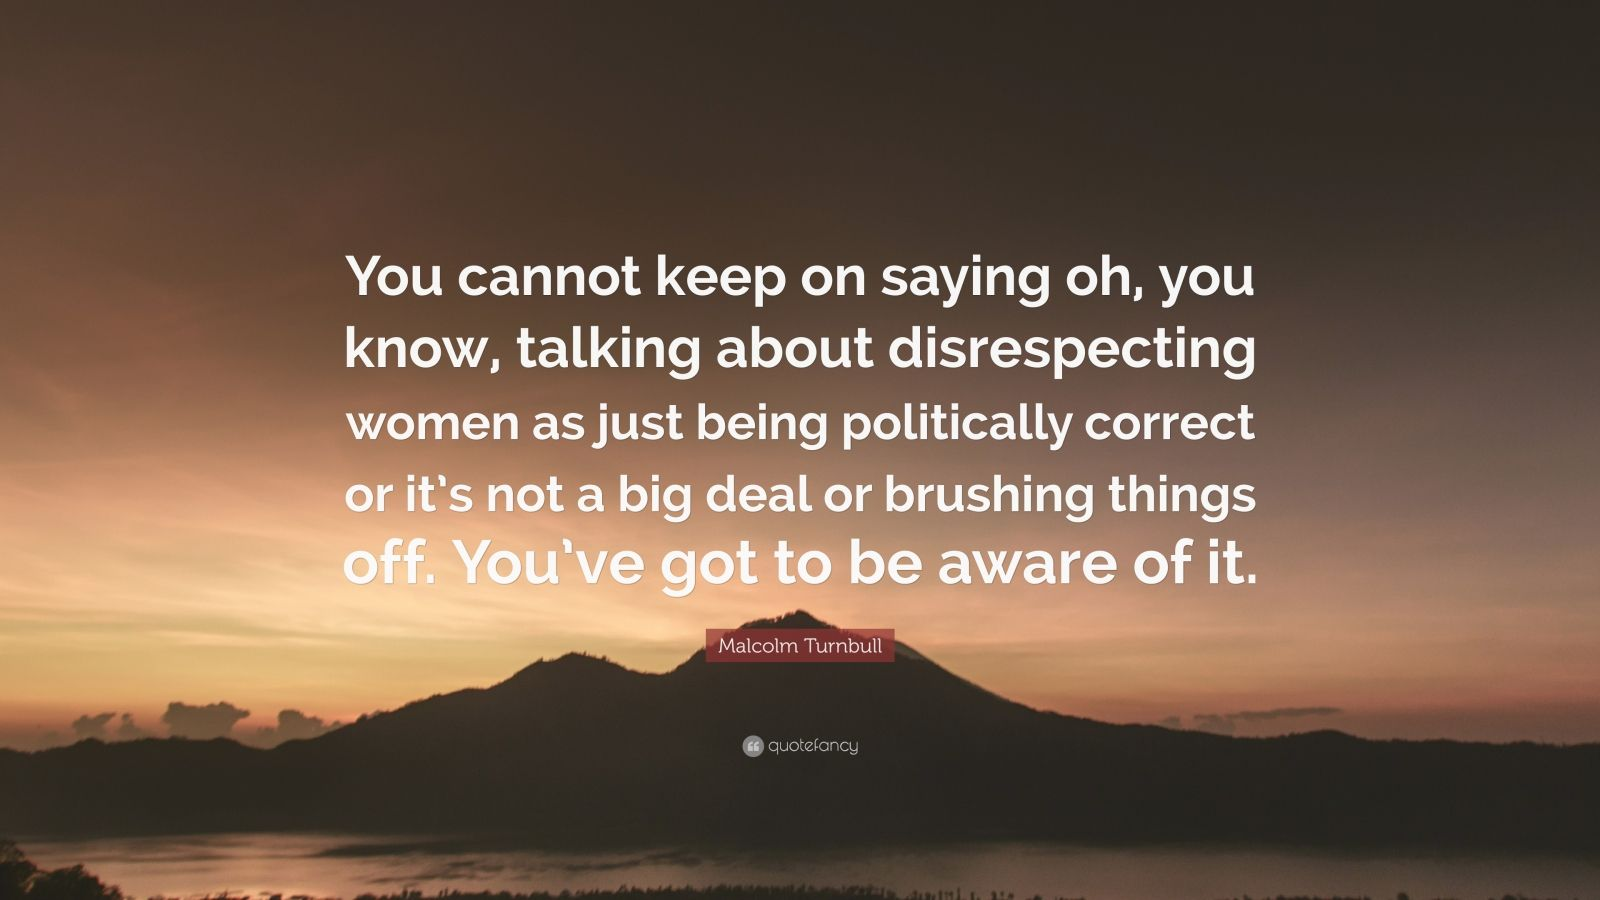 """Malcolm Turnbull Quote: """"You cannot keep on saying oh, you know, talking about disrespecting women as just being politically correct or it's not a big deal or brushing things off. You've got to be aware of it."""""""